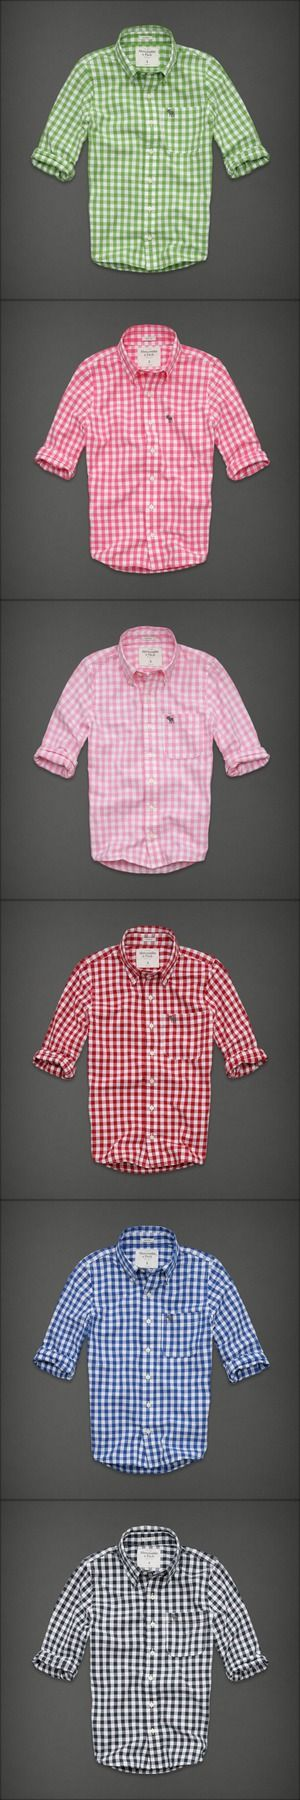 Need a summery look from Abercrombie & Fitch? #abercrombie #abercrombie